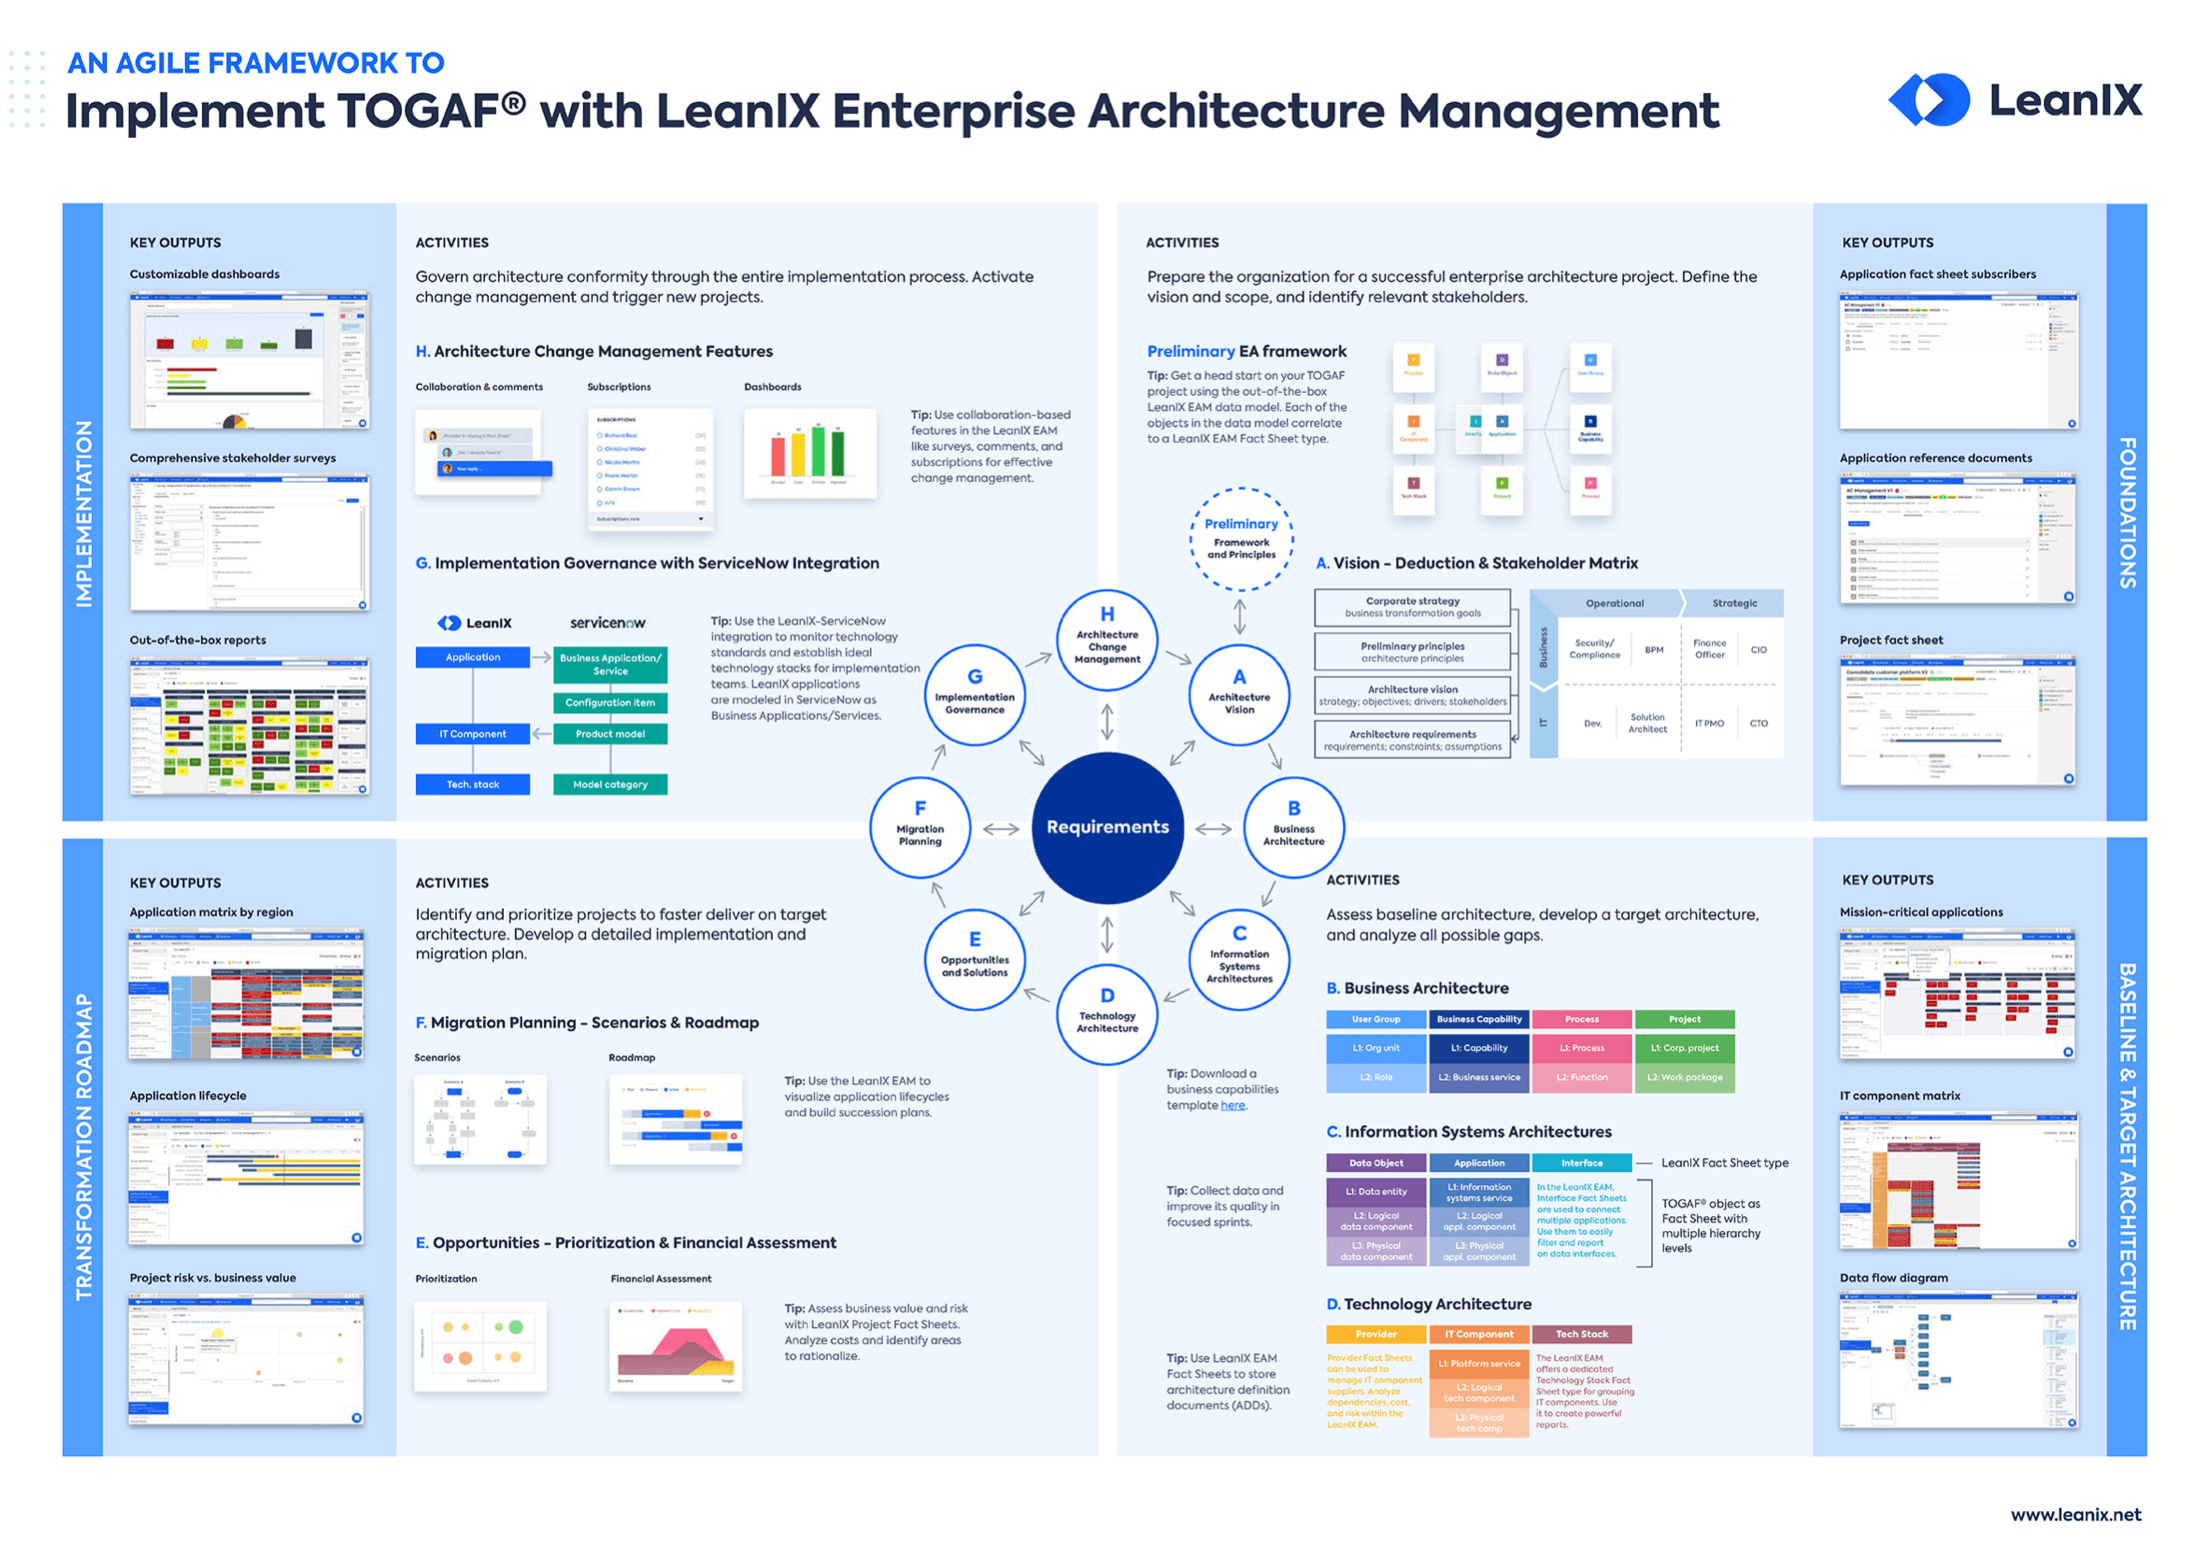 An agile framework to implement TOGAF® with LeanIX